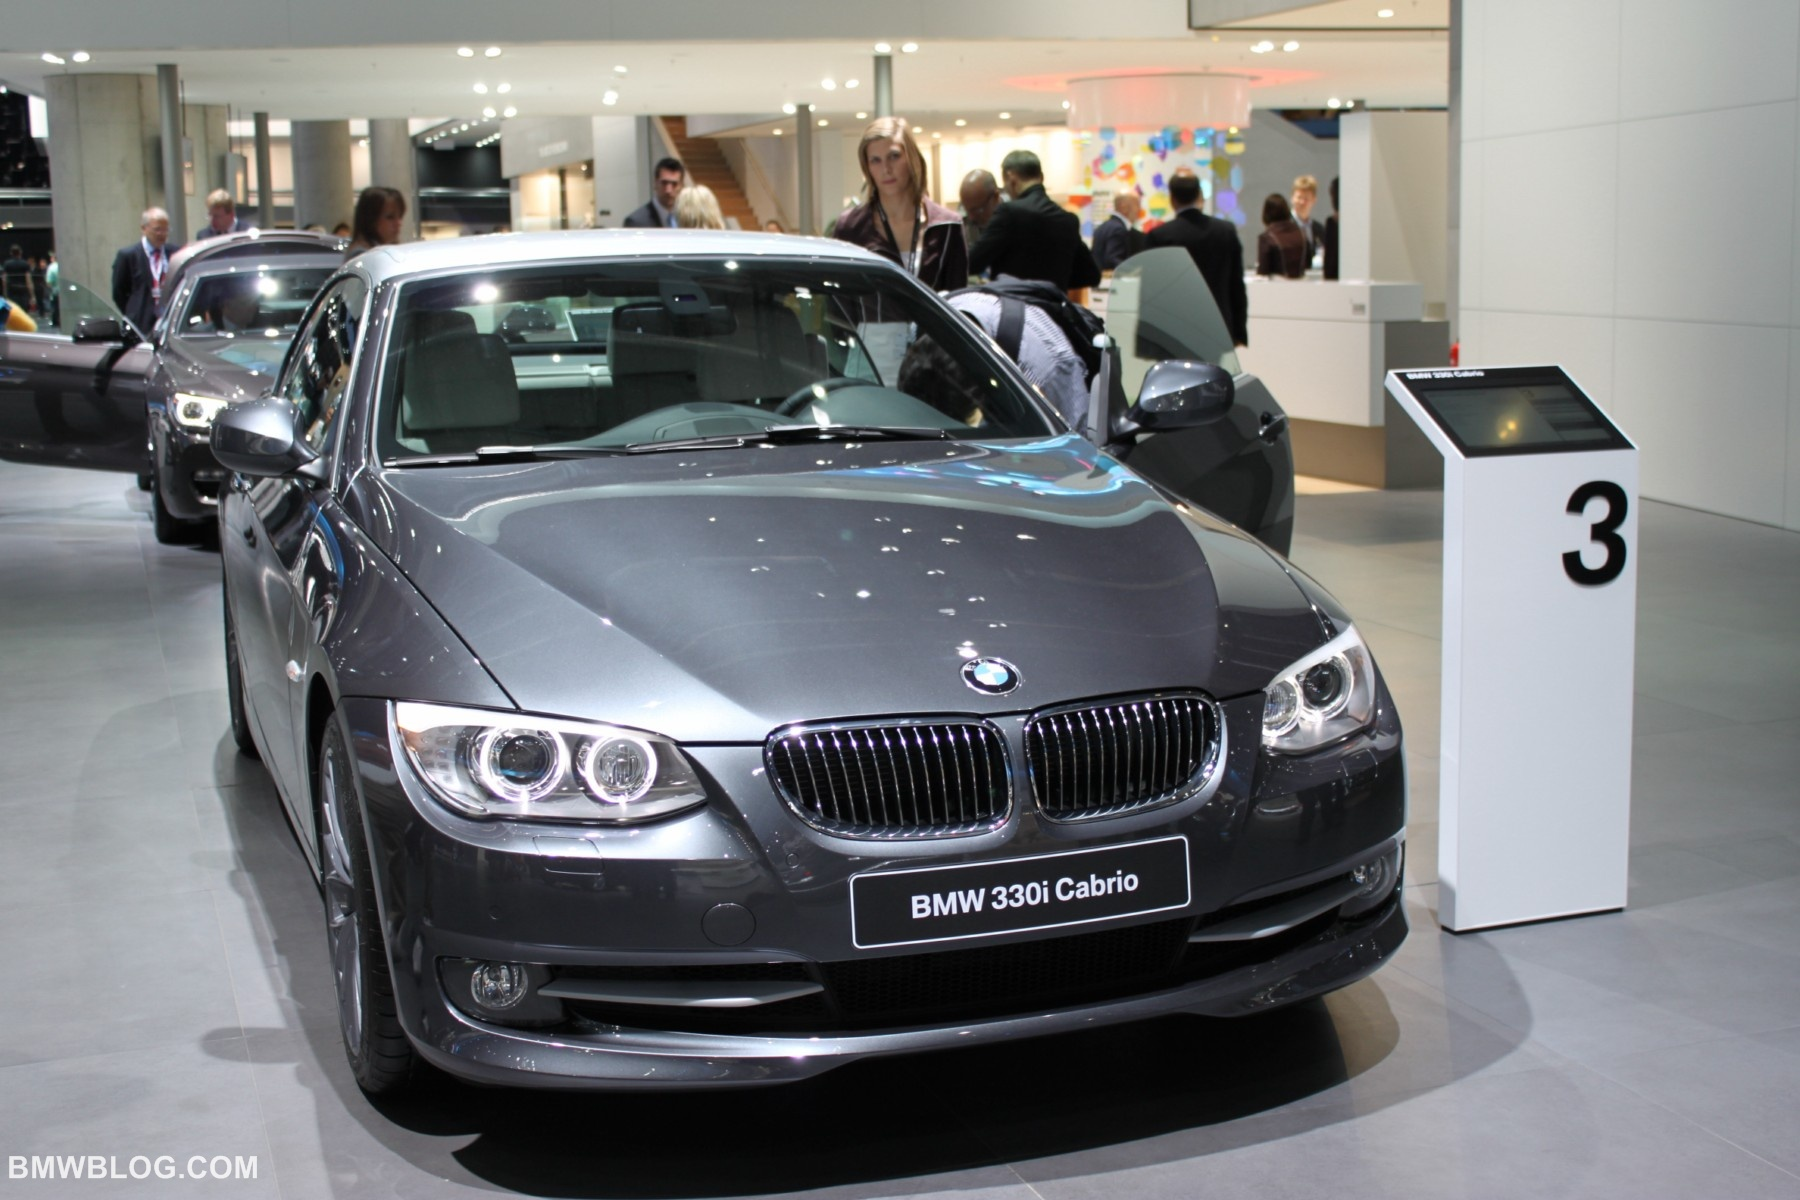 Iaa 2011 2012 Bmw 3 Series Exclusive Edition